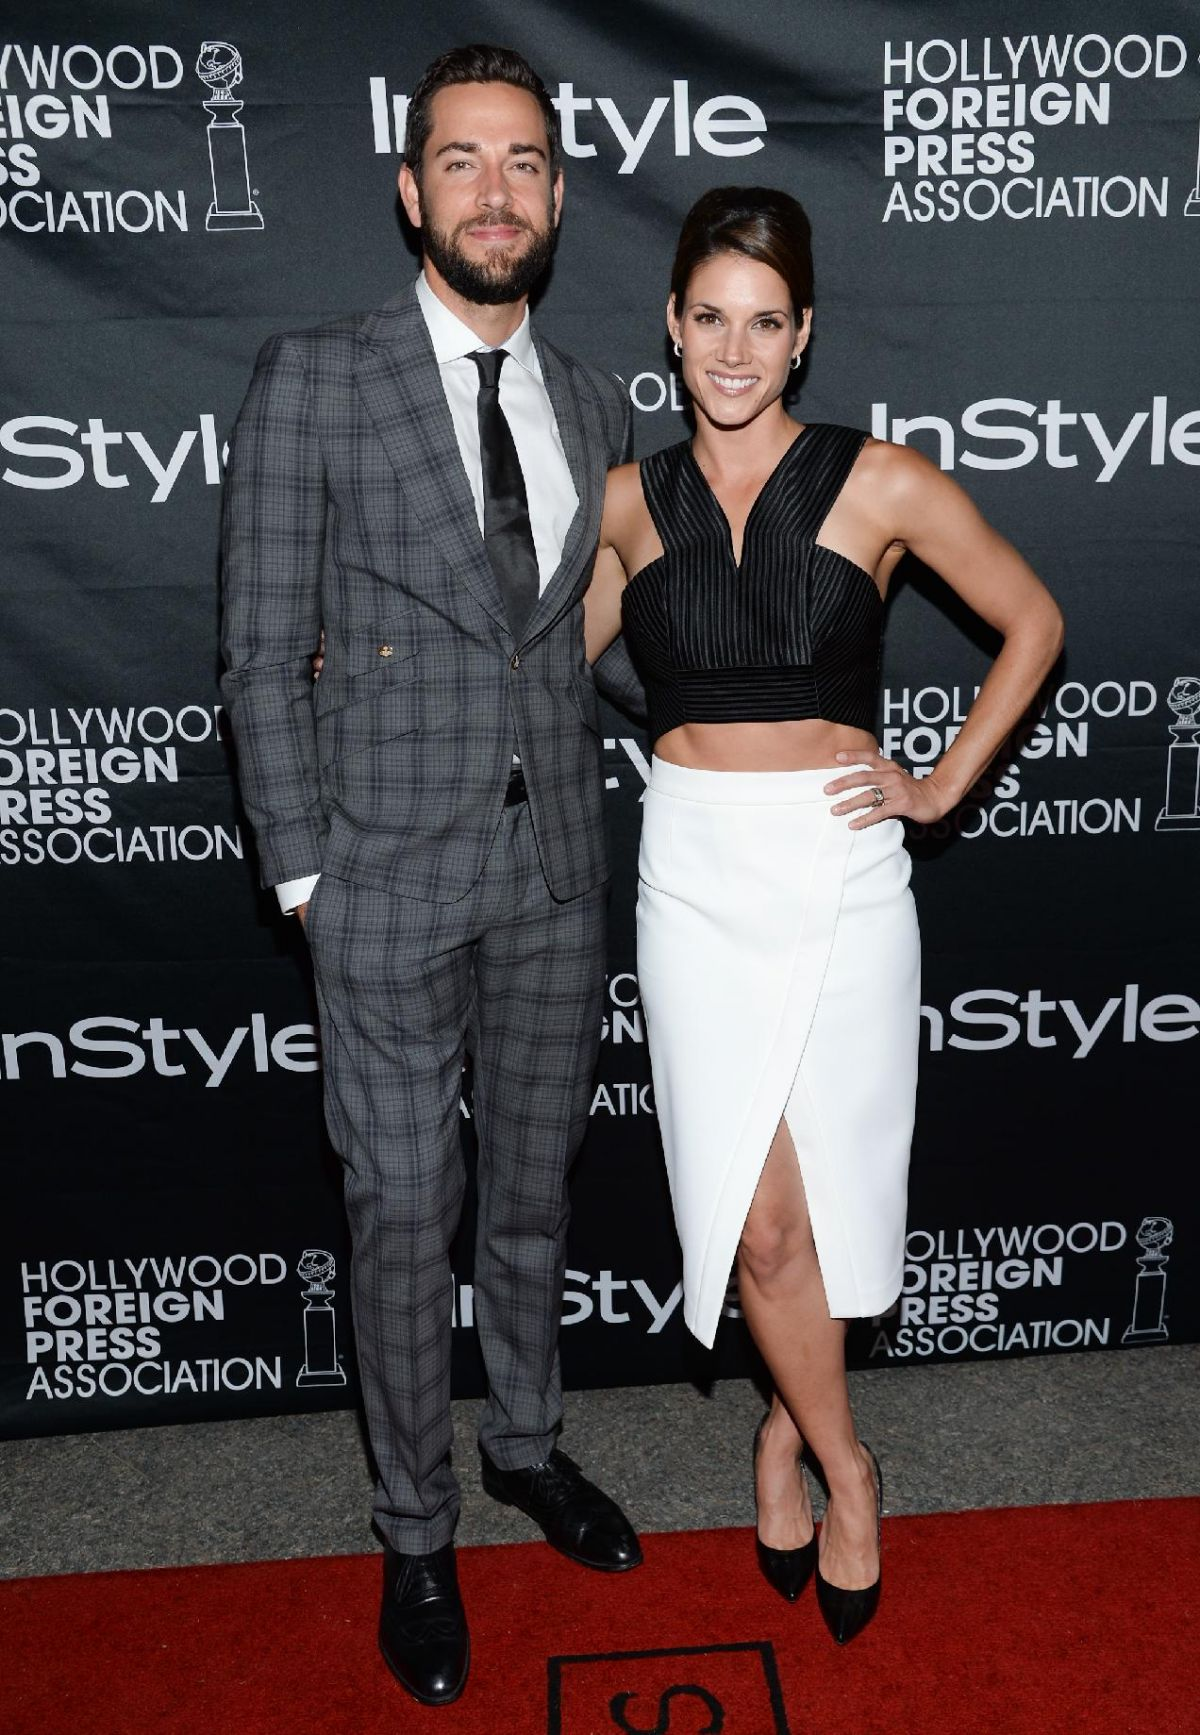 MISSY PEREGRYM at Hollywood Foreign Press Association and Instyle Party in Toronto